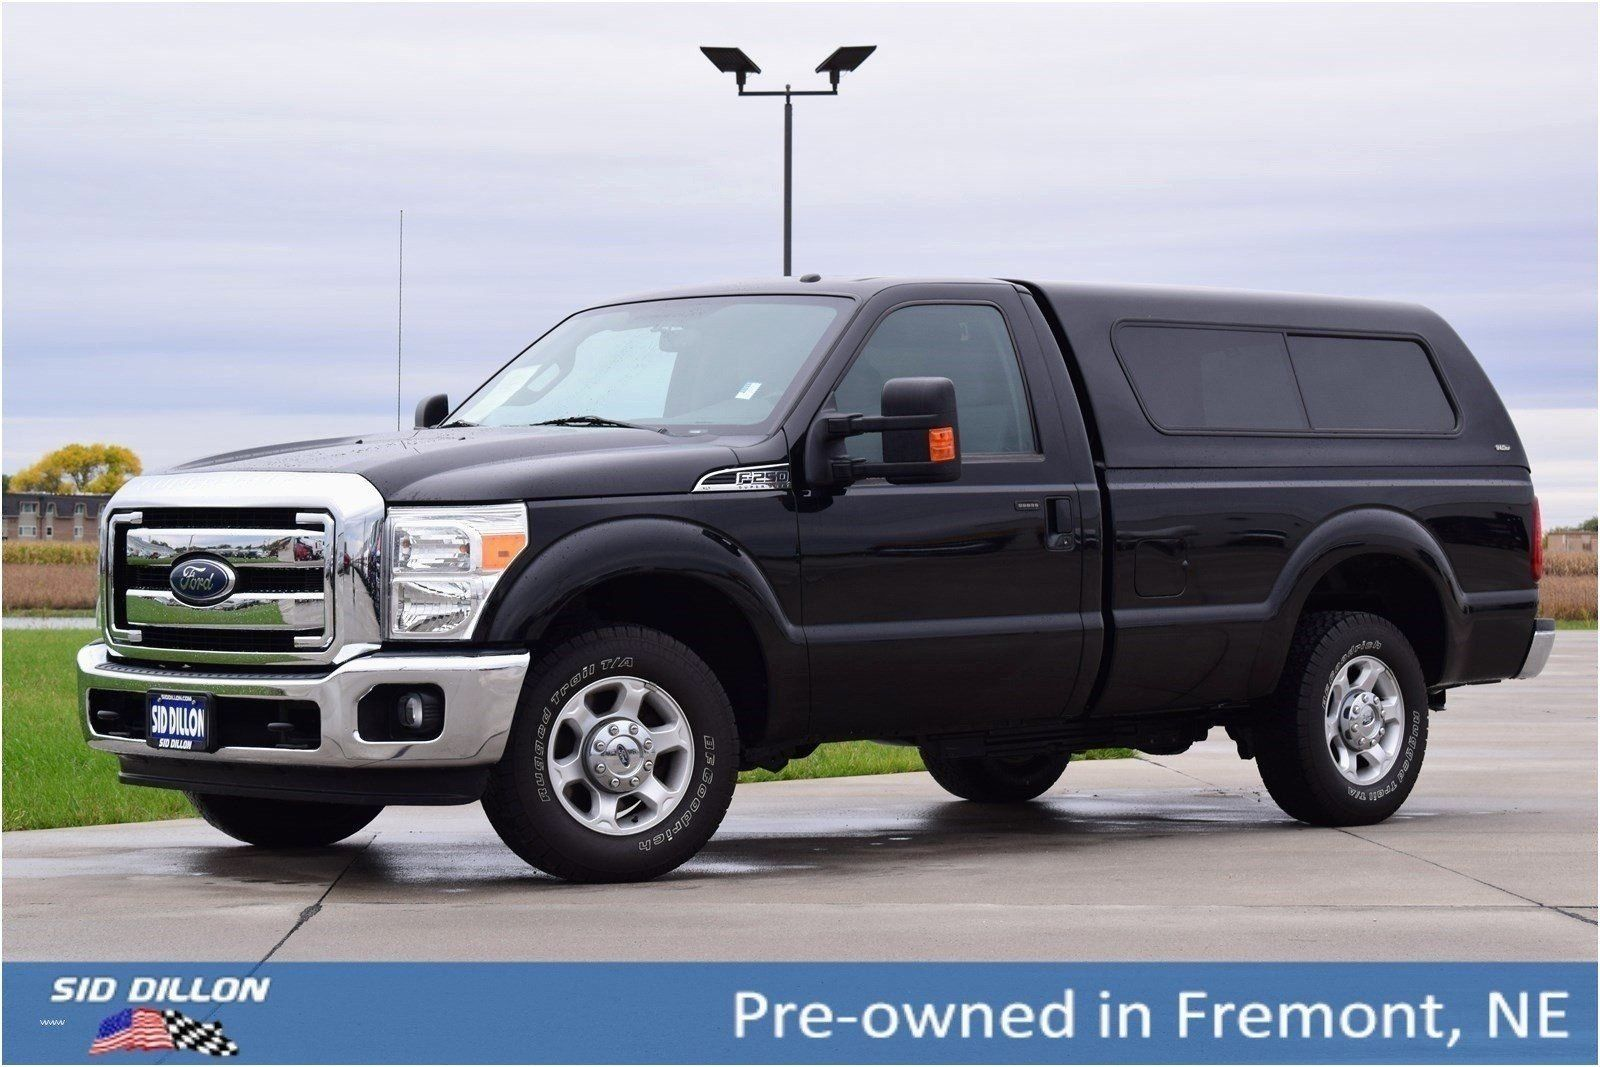 2020 Ford Excursion Rumors News Release Price Check More At